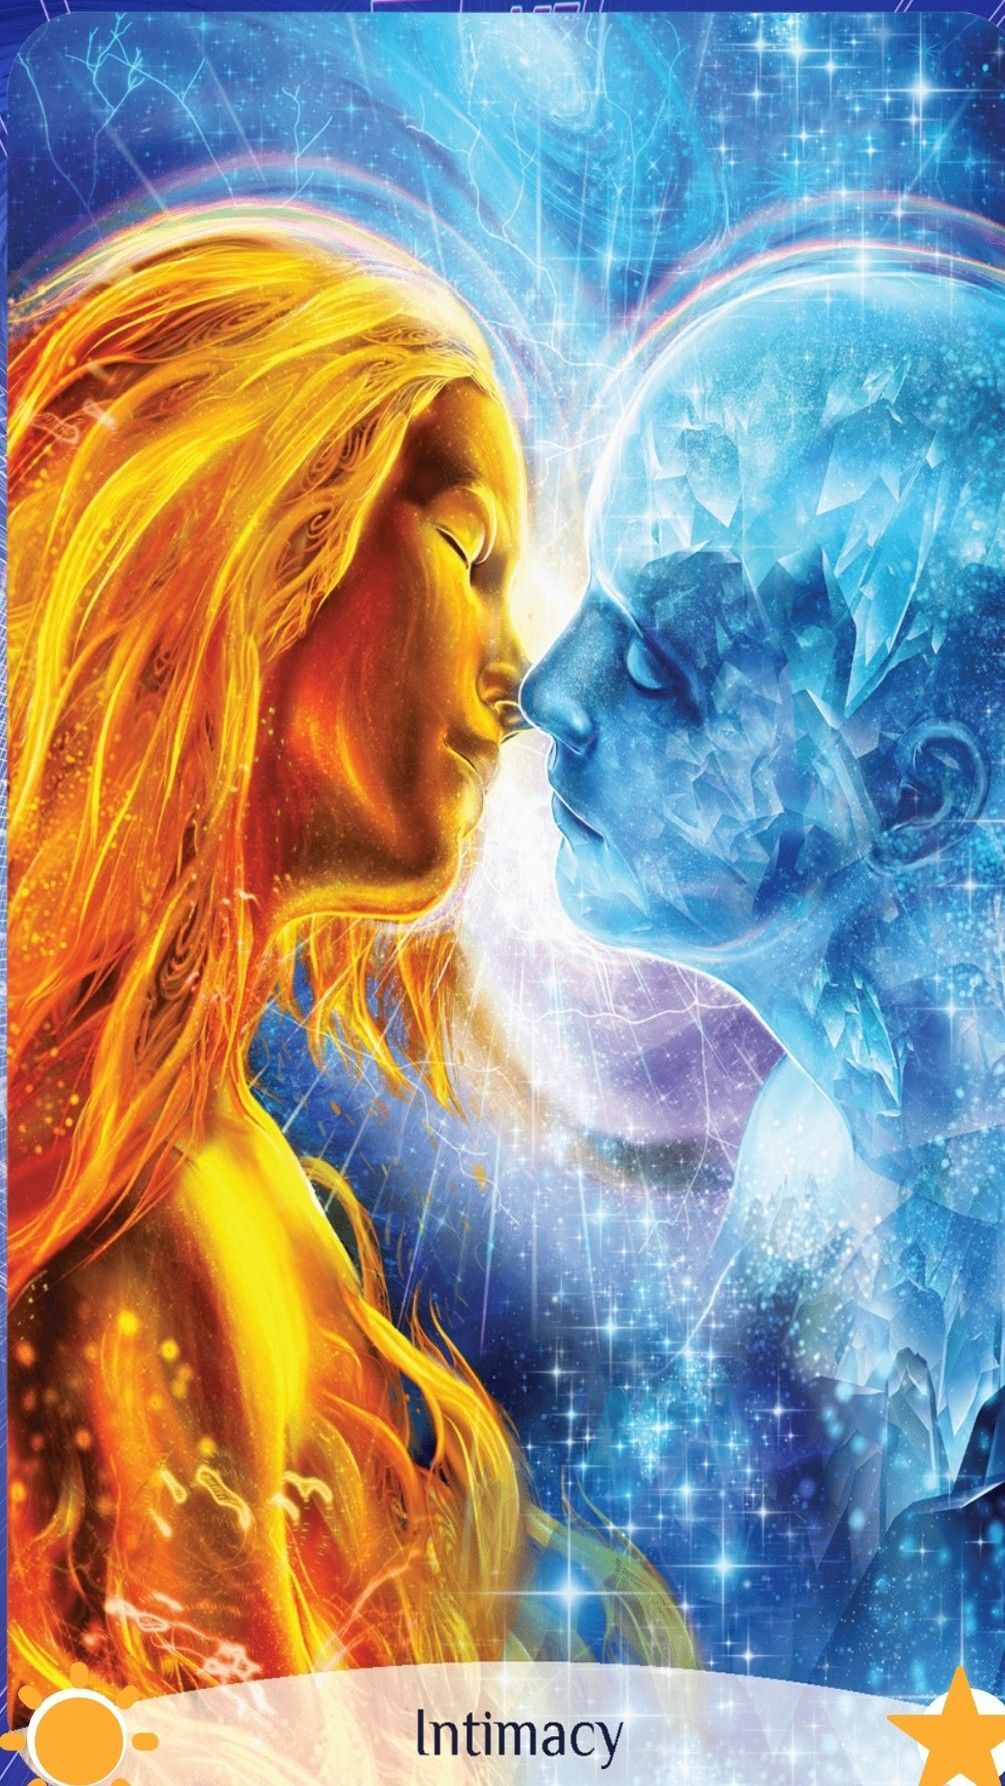 Chakra reading cards intimacy twin flame art flame